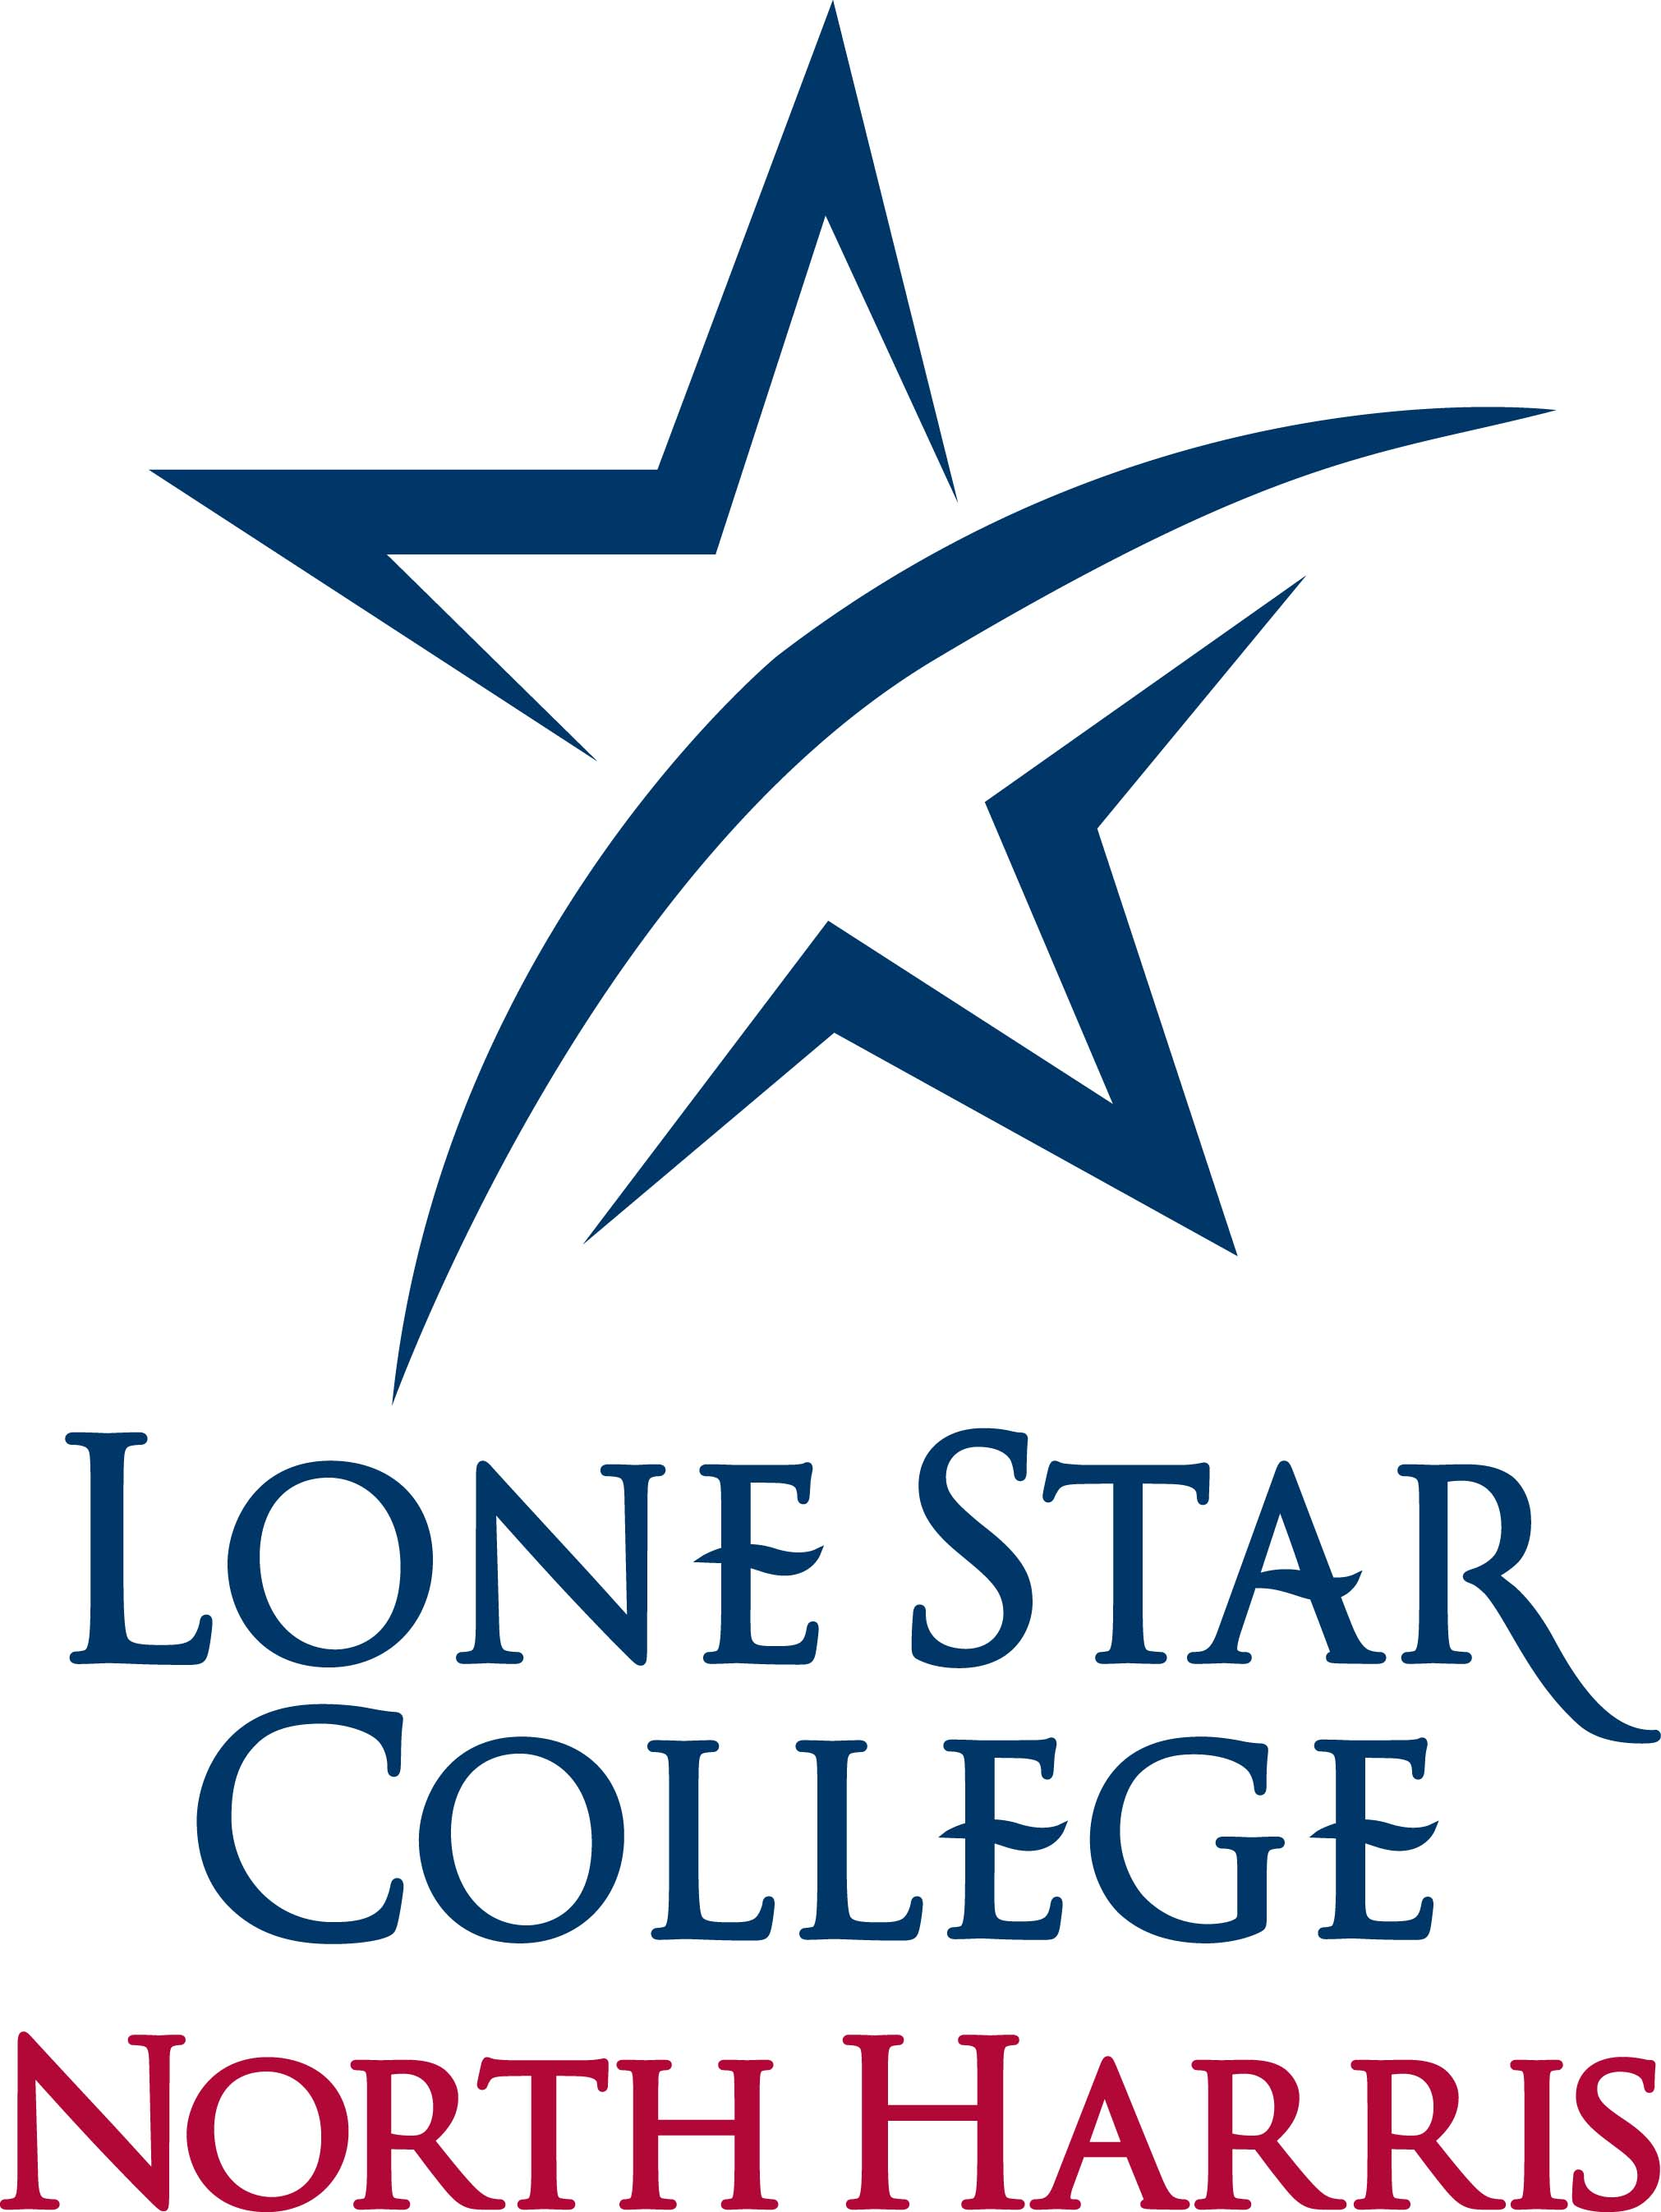 Lone Star College-North Harris logo